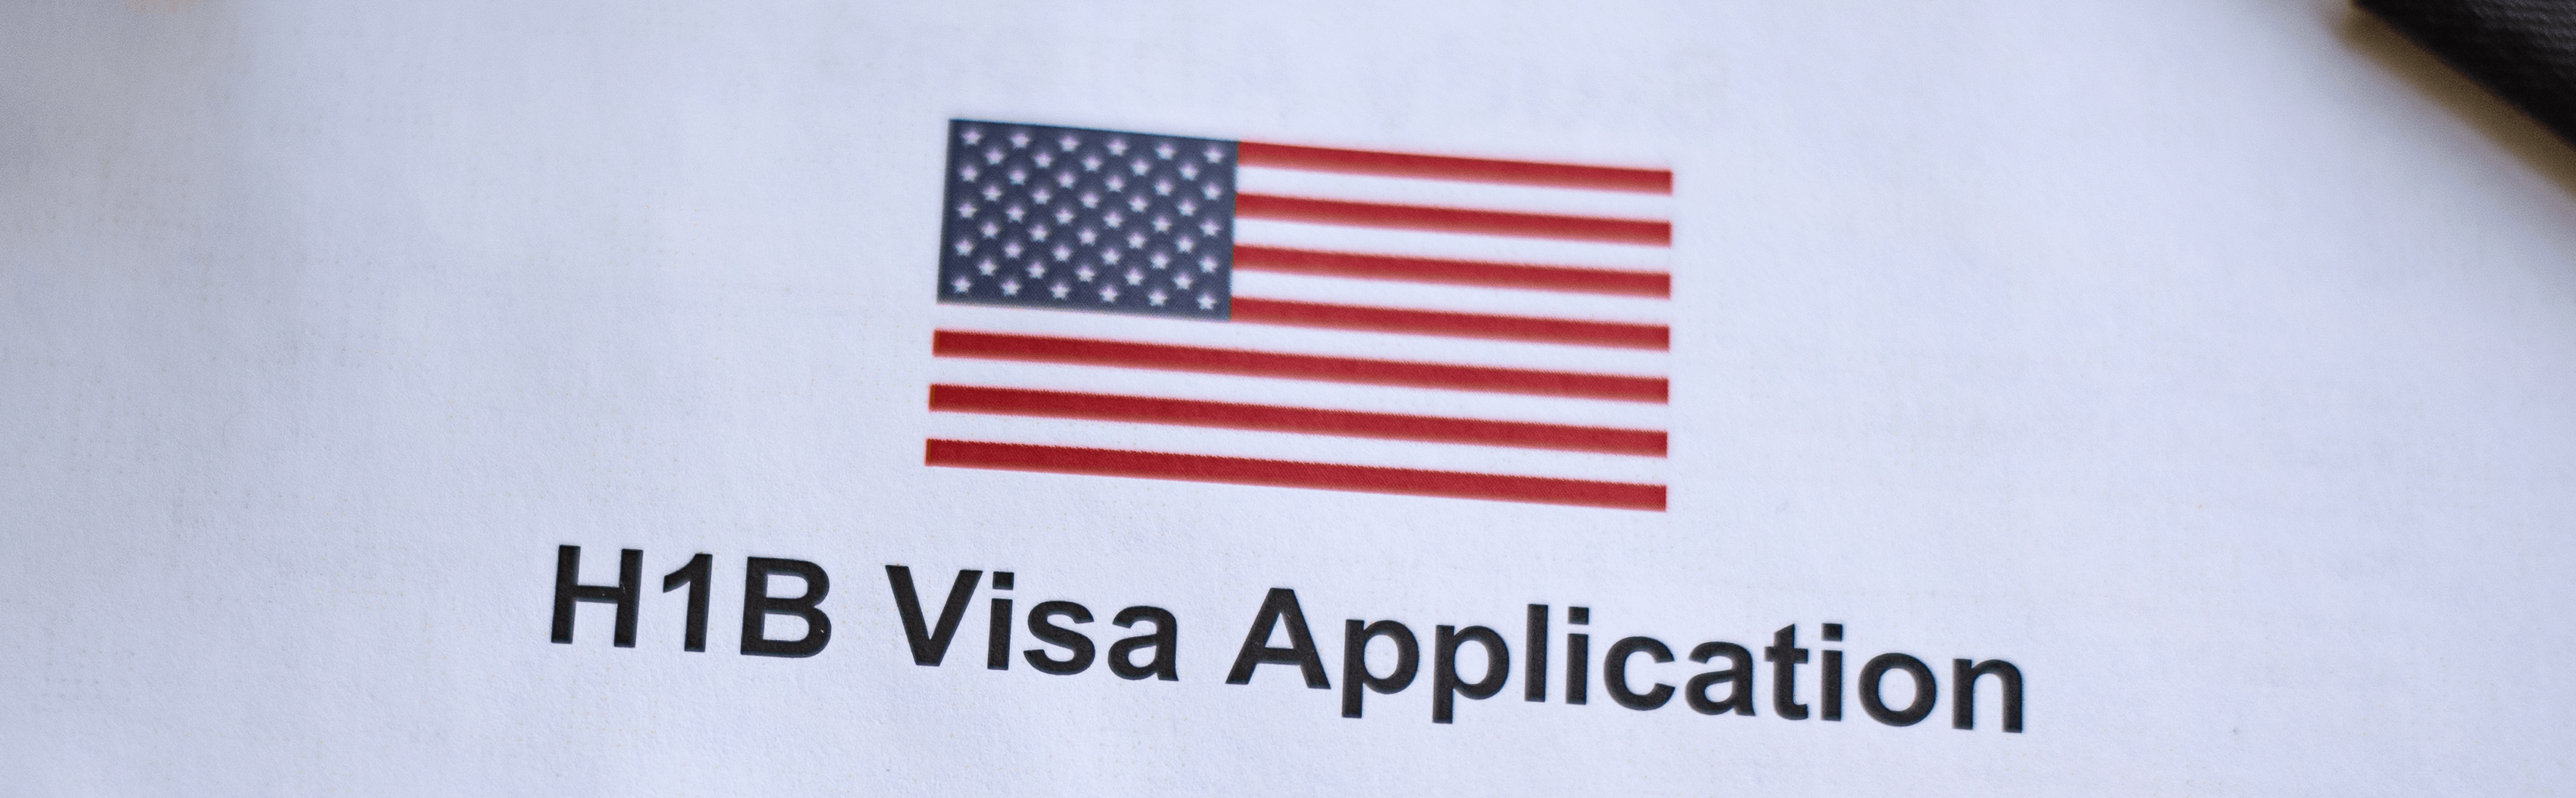 H1B Visa LCA - What is it - How to Apply